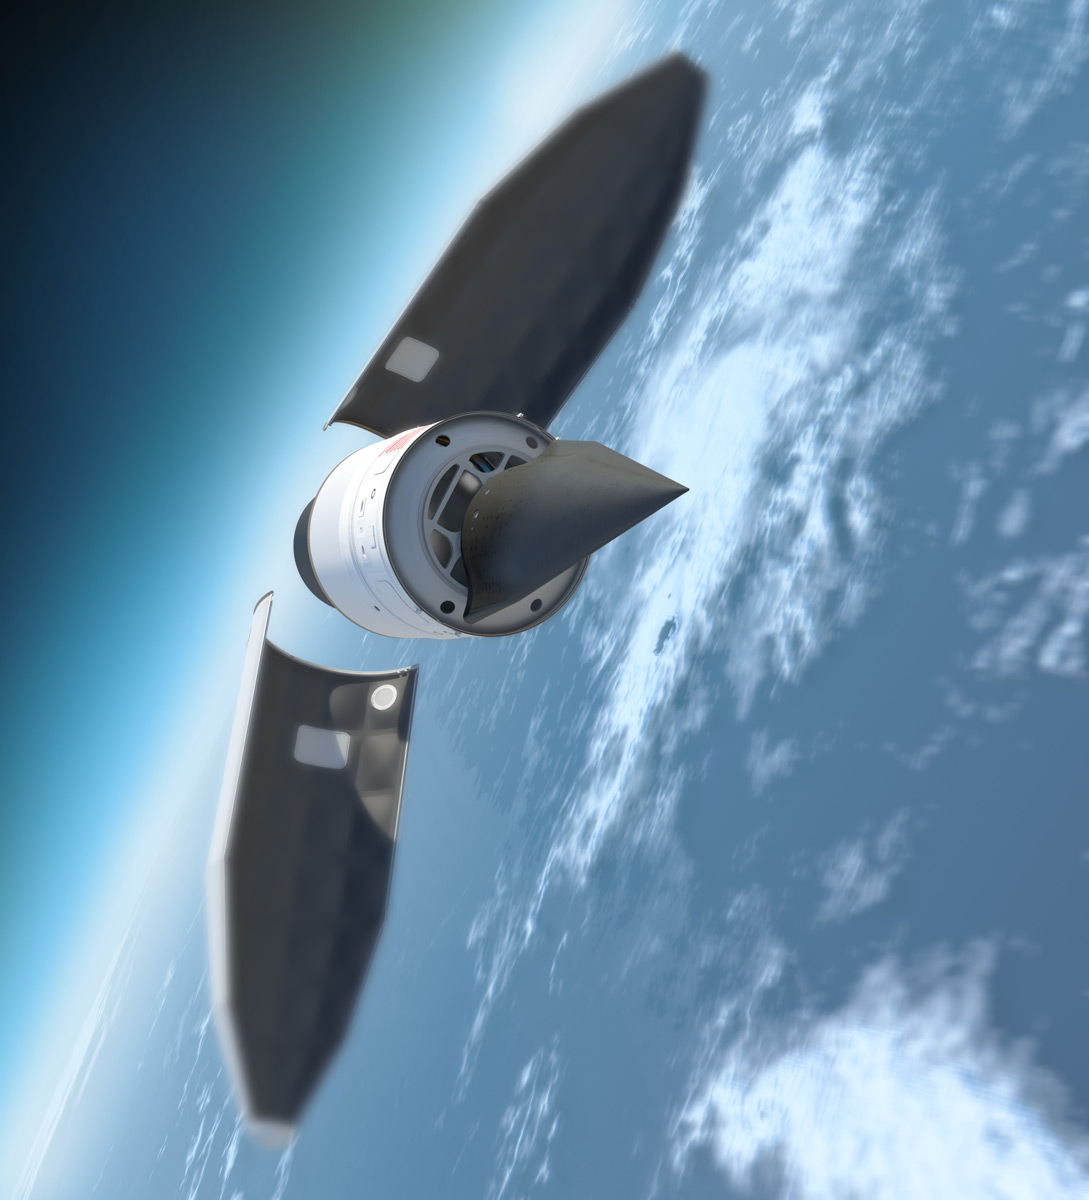 Falcon Hypersonic HTV-2 Payload Fairing Jettisoned